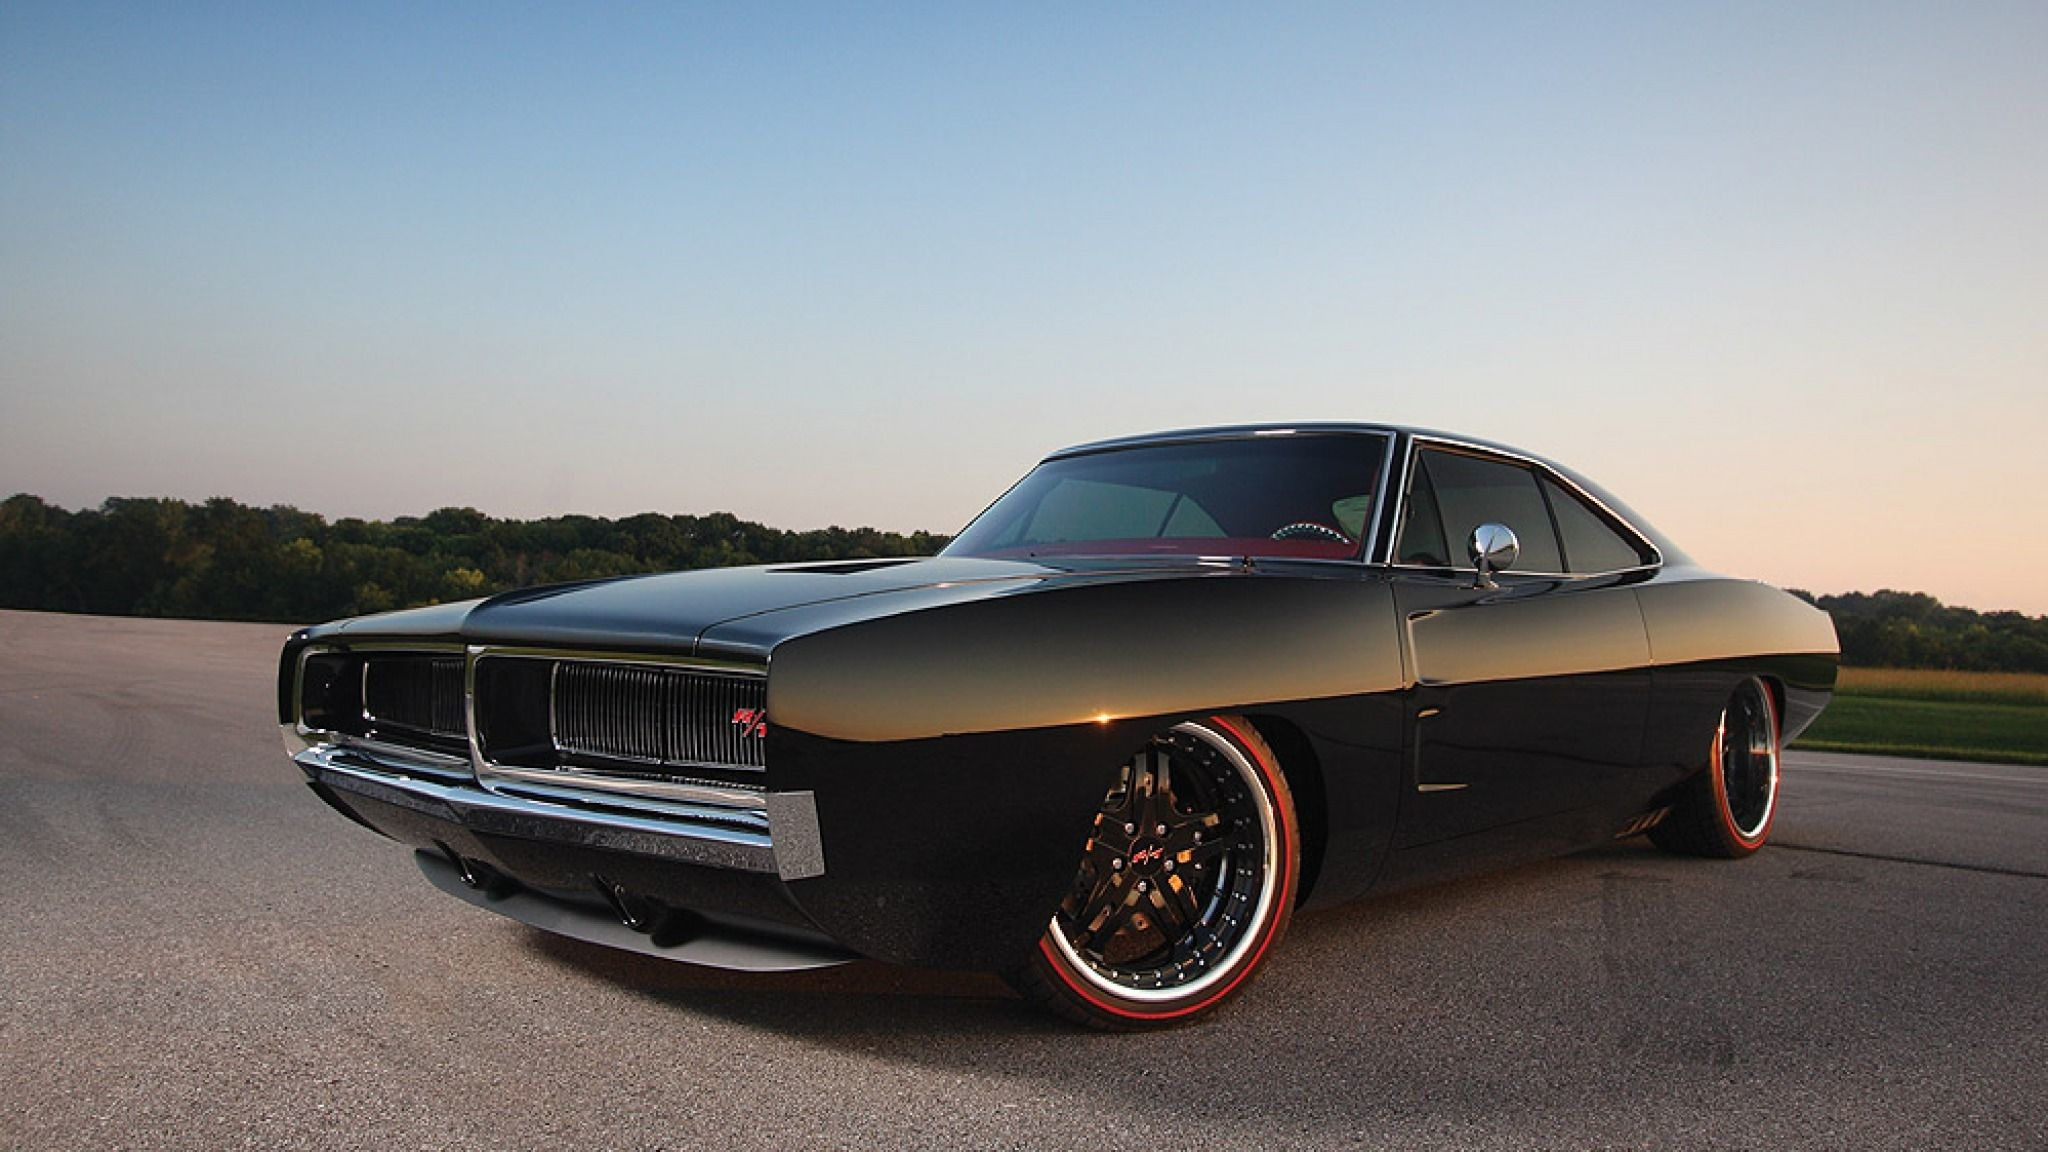 2048x1152 1970 Dodge Charger Wheels Mopar And Chargers On